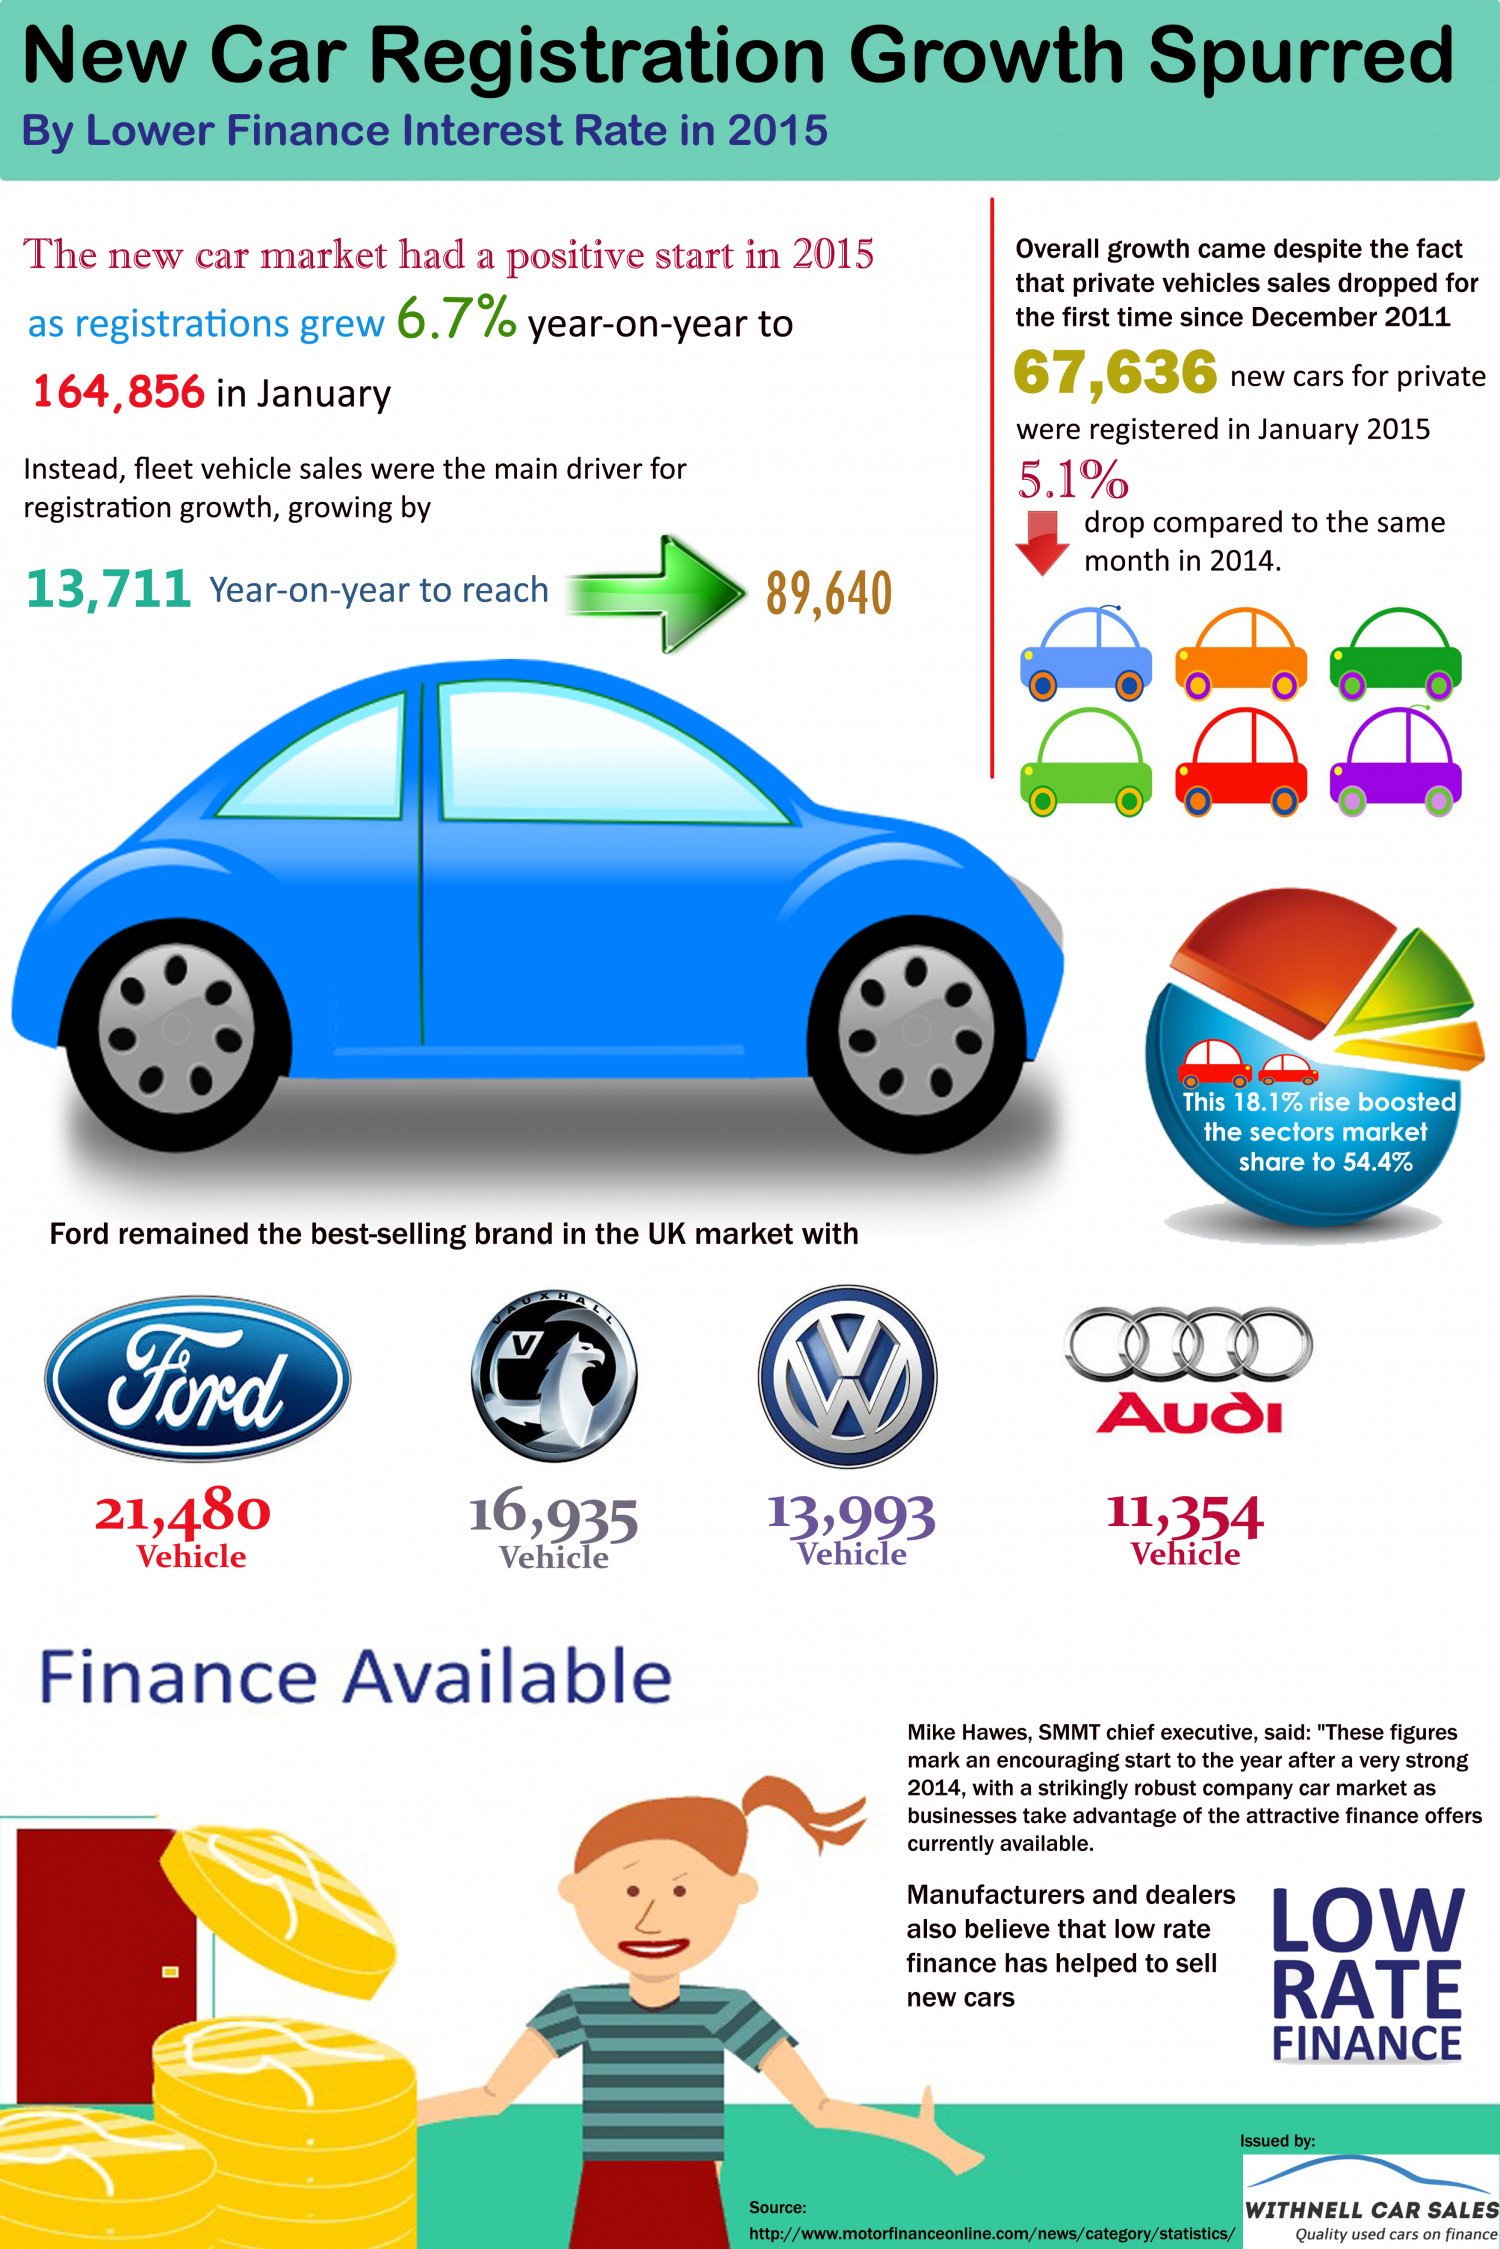 New Car Registration Growth Spurred By Lower Finance Interest Rate in 2015 Infographic